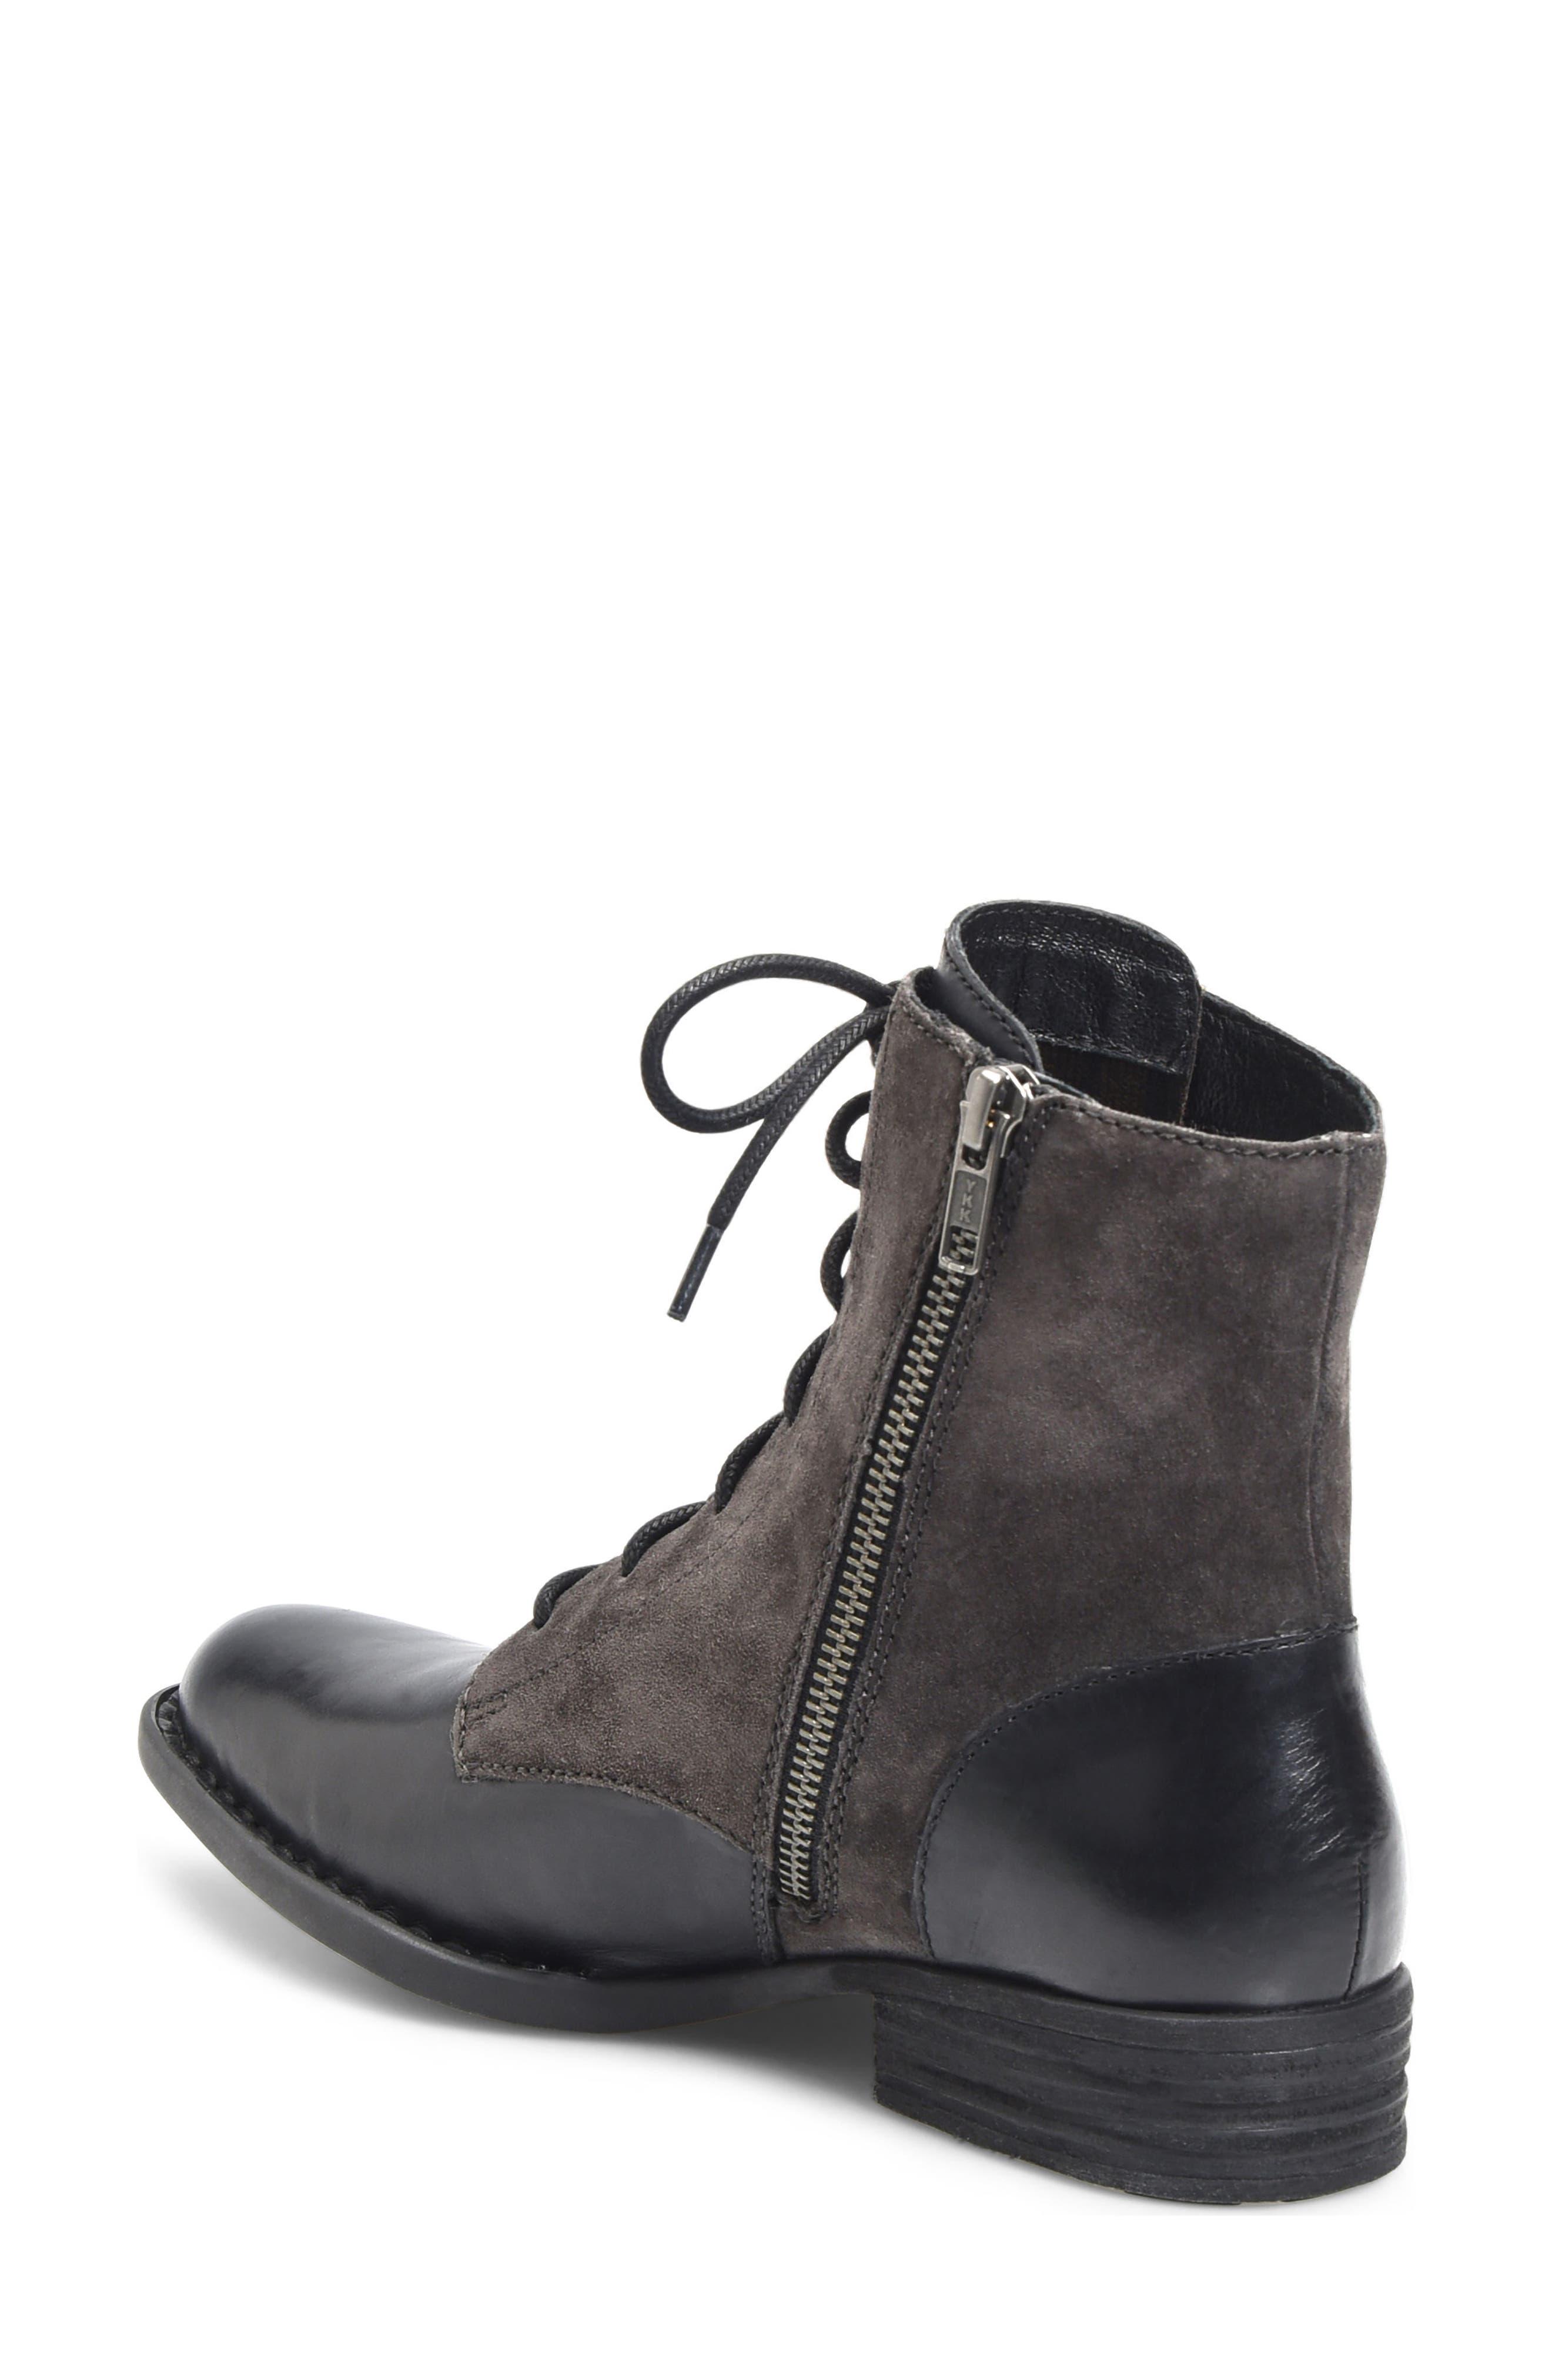 Clements Lace-Up Boot,                             Alternate thumbnail 5, color,